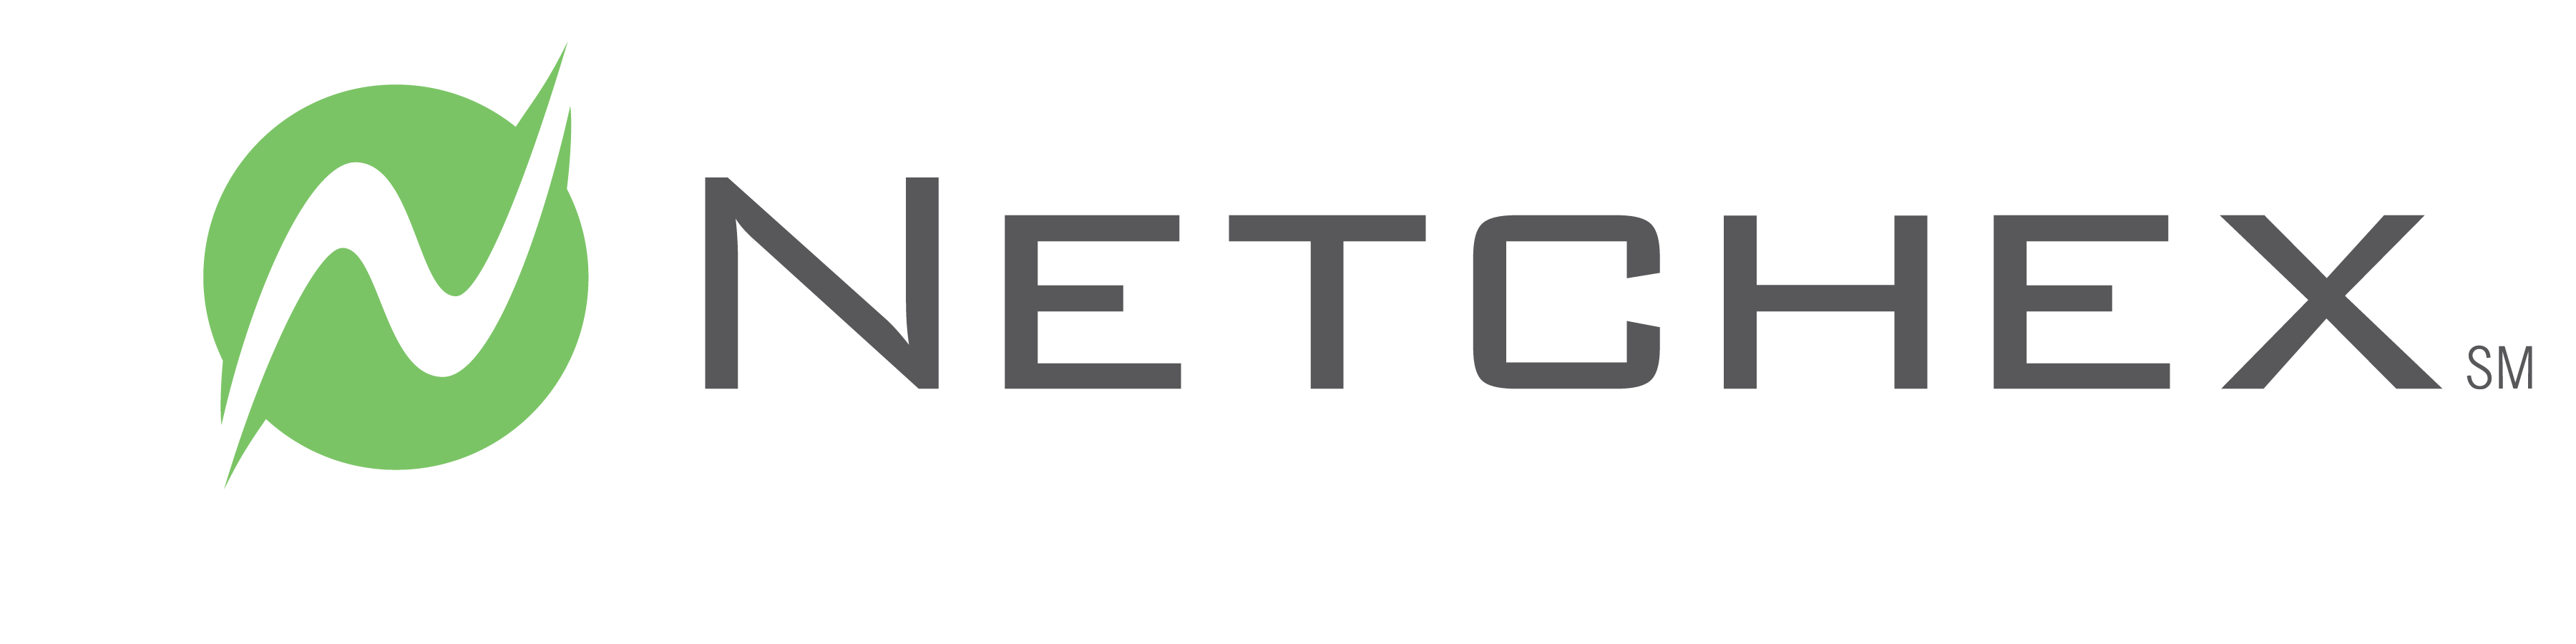 Netchex Logo.png